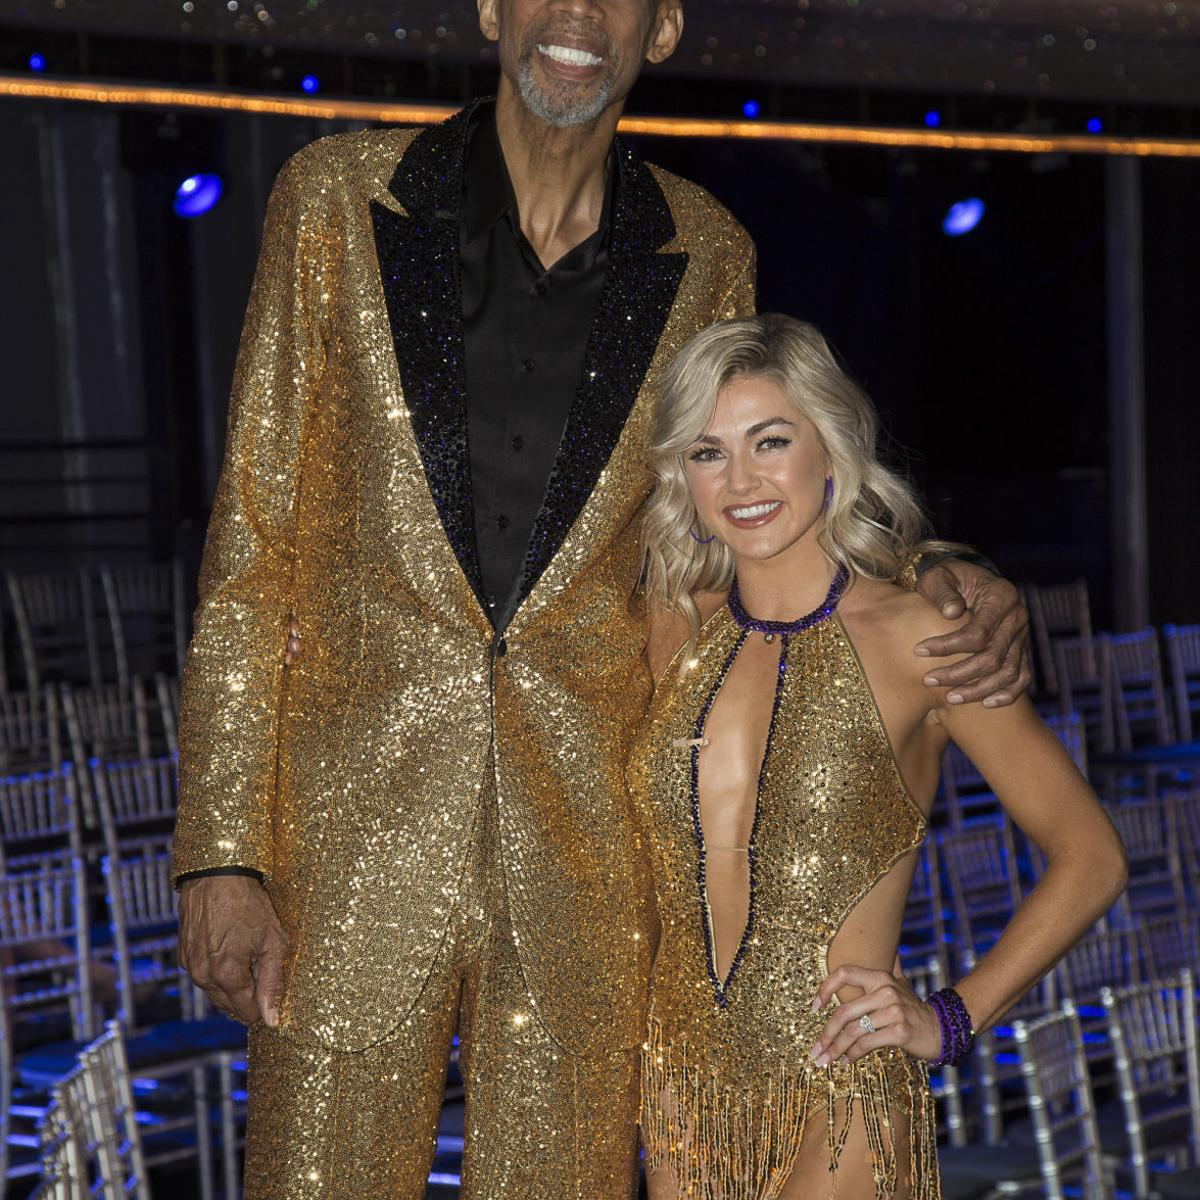 Kareem Arike Exit Dancing With The Stars Adam Rippon Jumps Ahead Television Siouxcityjournal Com